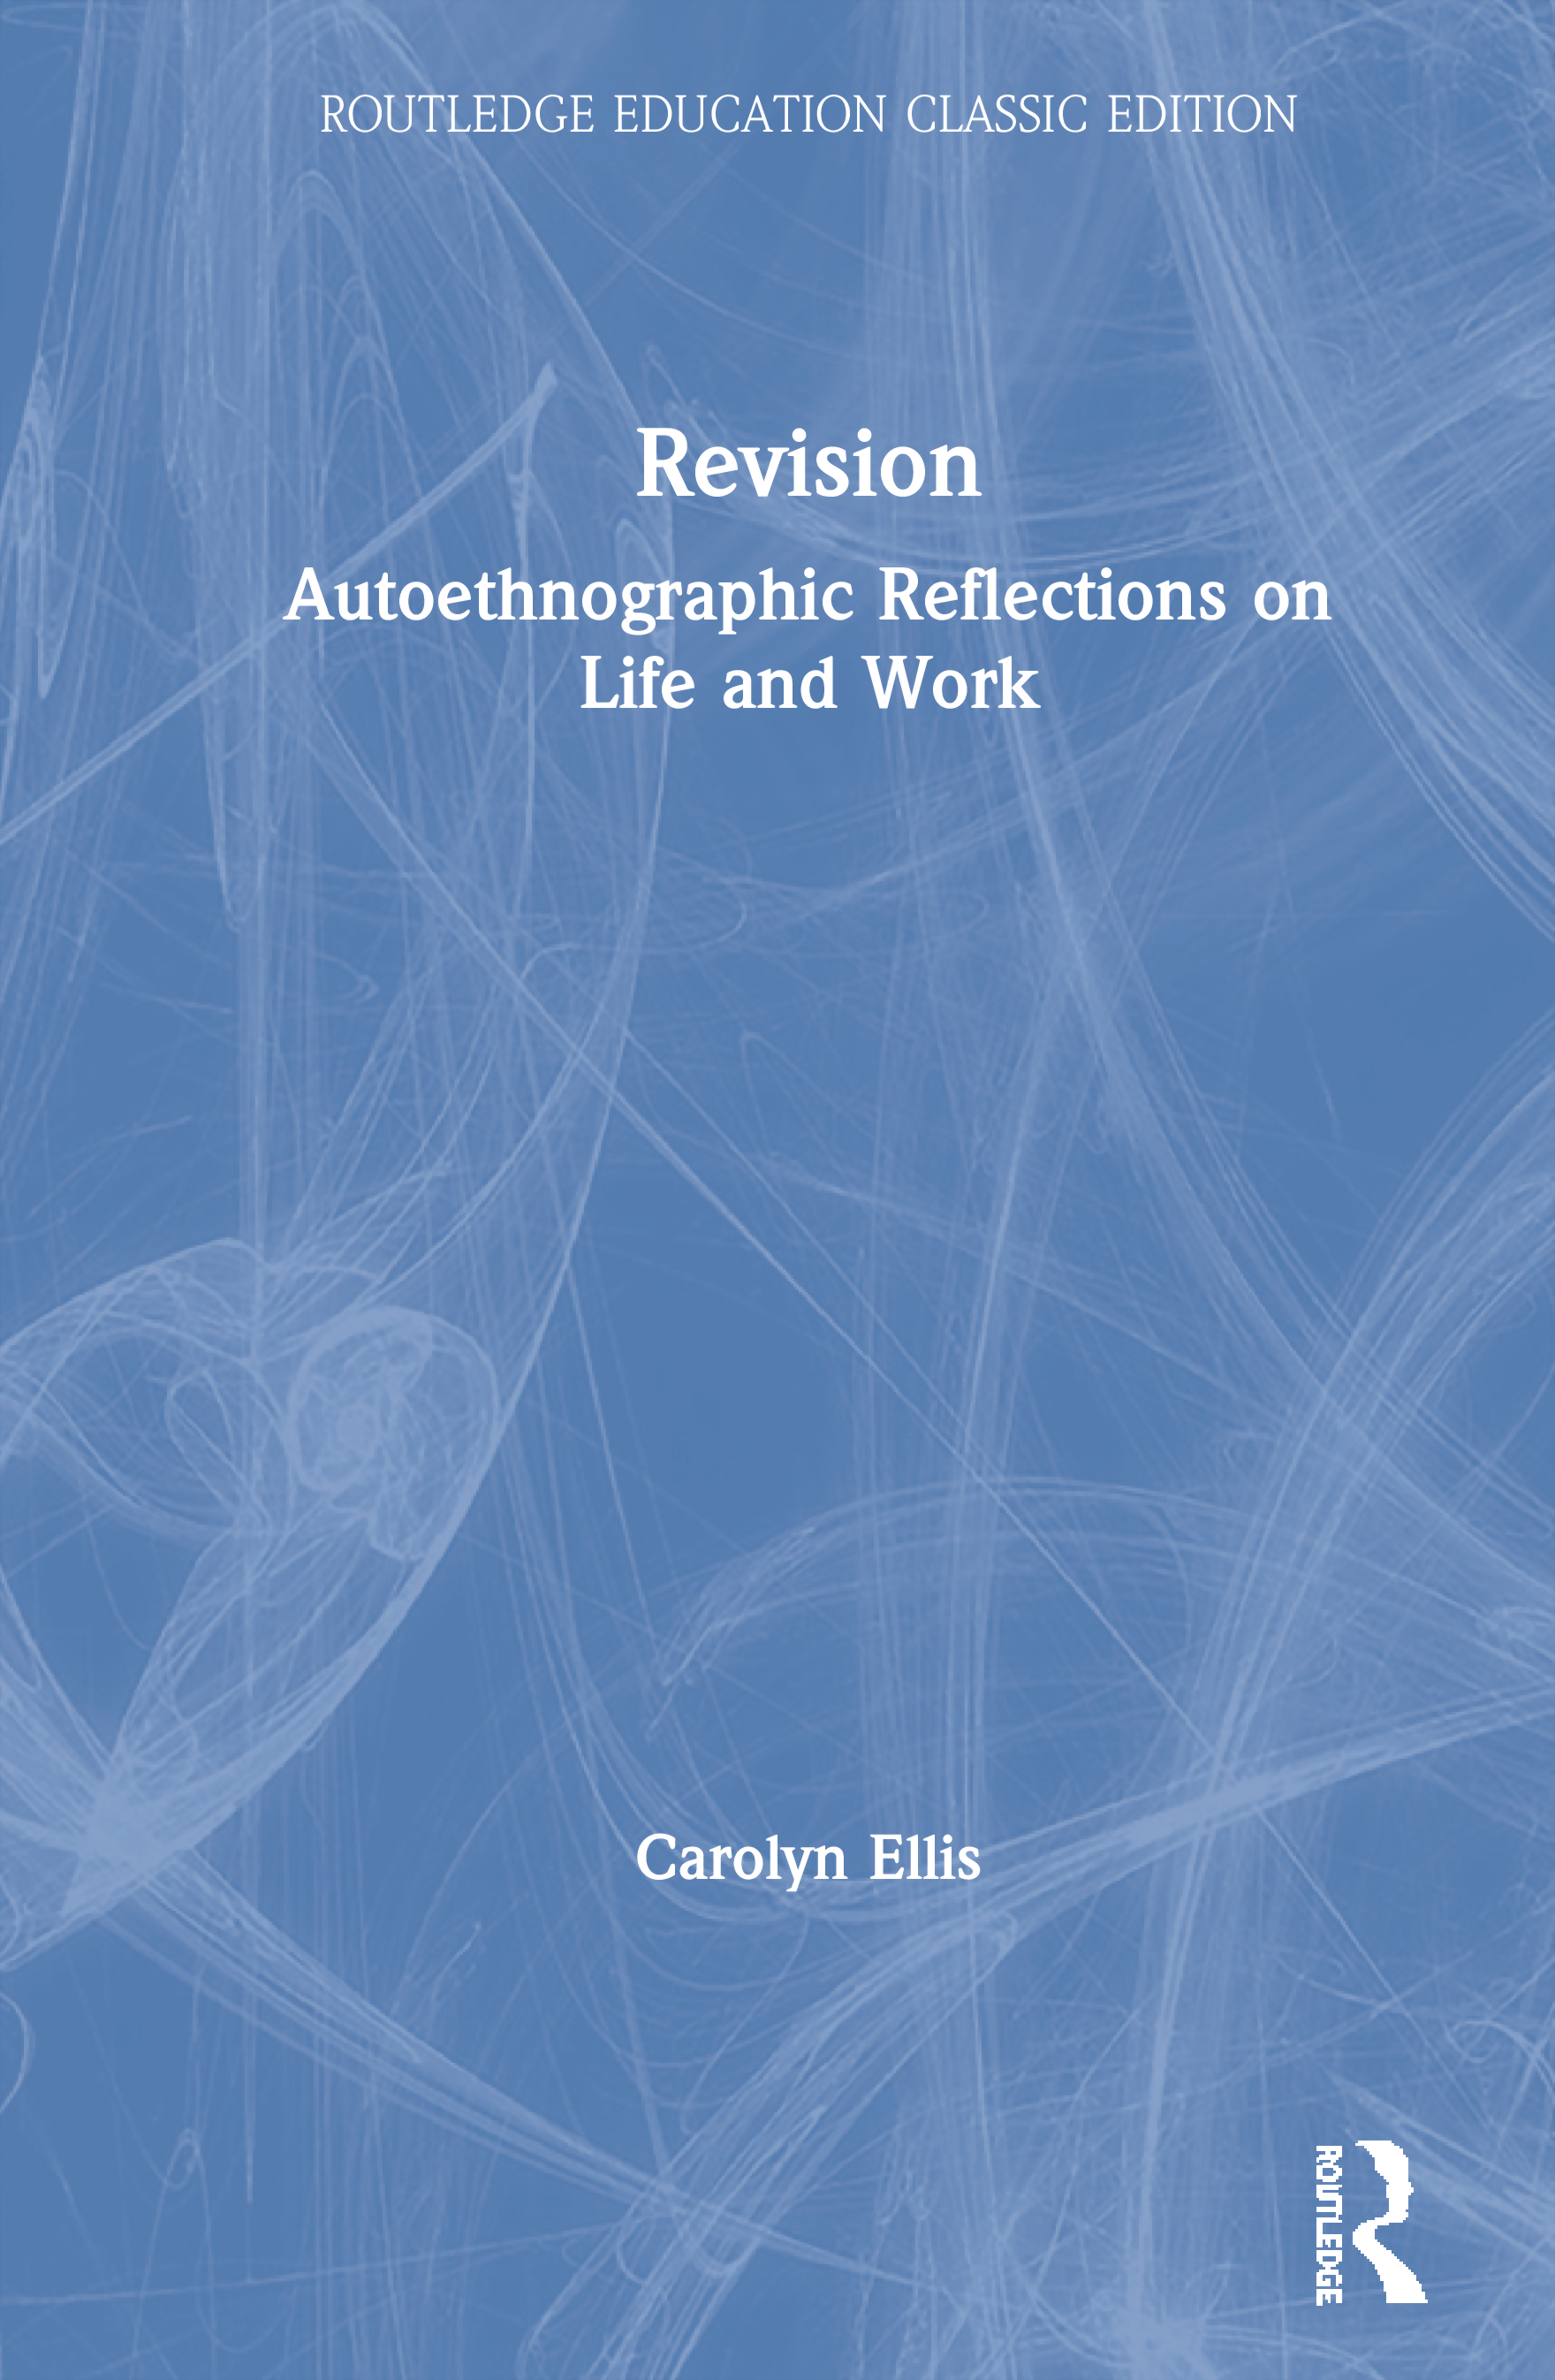 Revision: Autoethnographic Reflections on Life and Work book cover